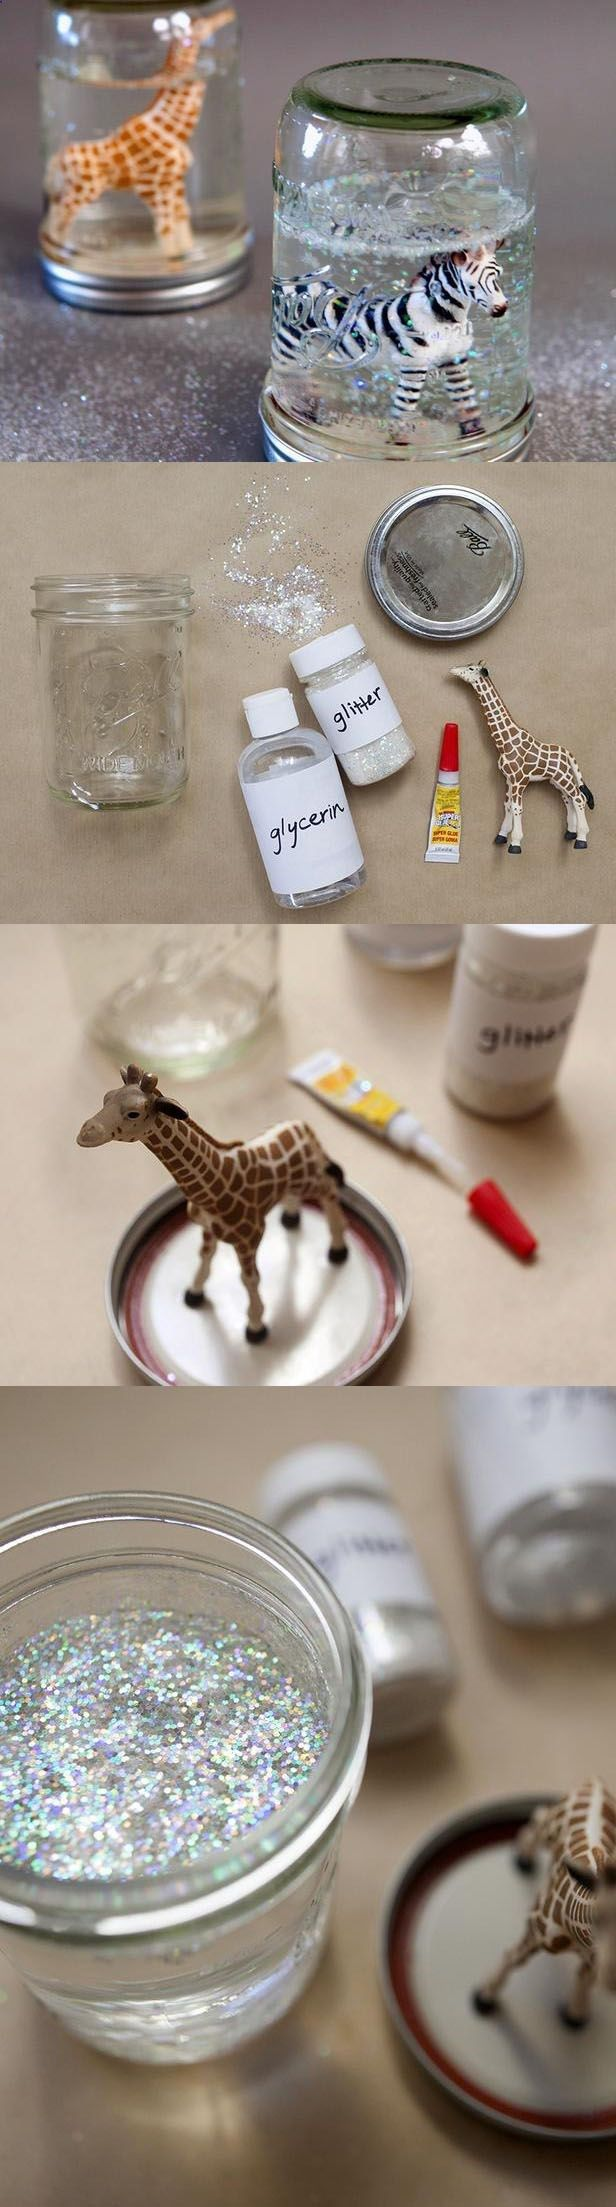 DIY KIDS: Easy To Make! Would love to do this with my siblings and the kids I babysit!